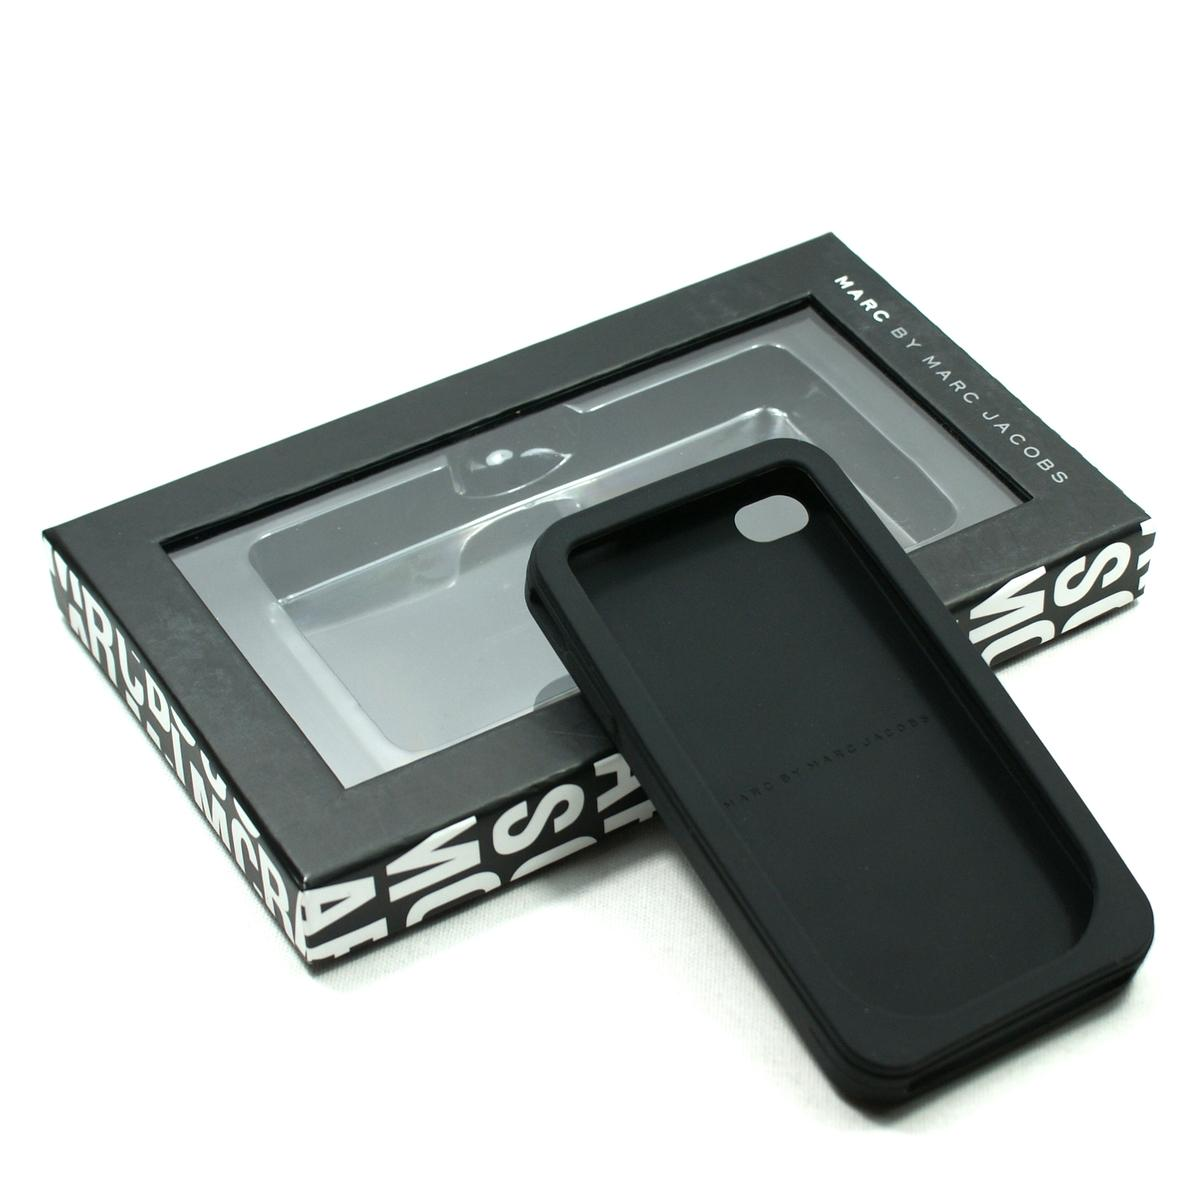 Marc By Marc Jacobs IPhone 4 Case Black and White Premium ...